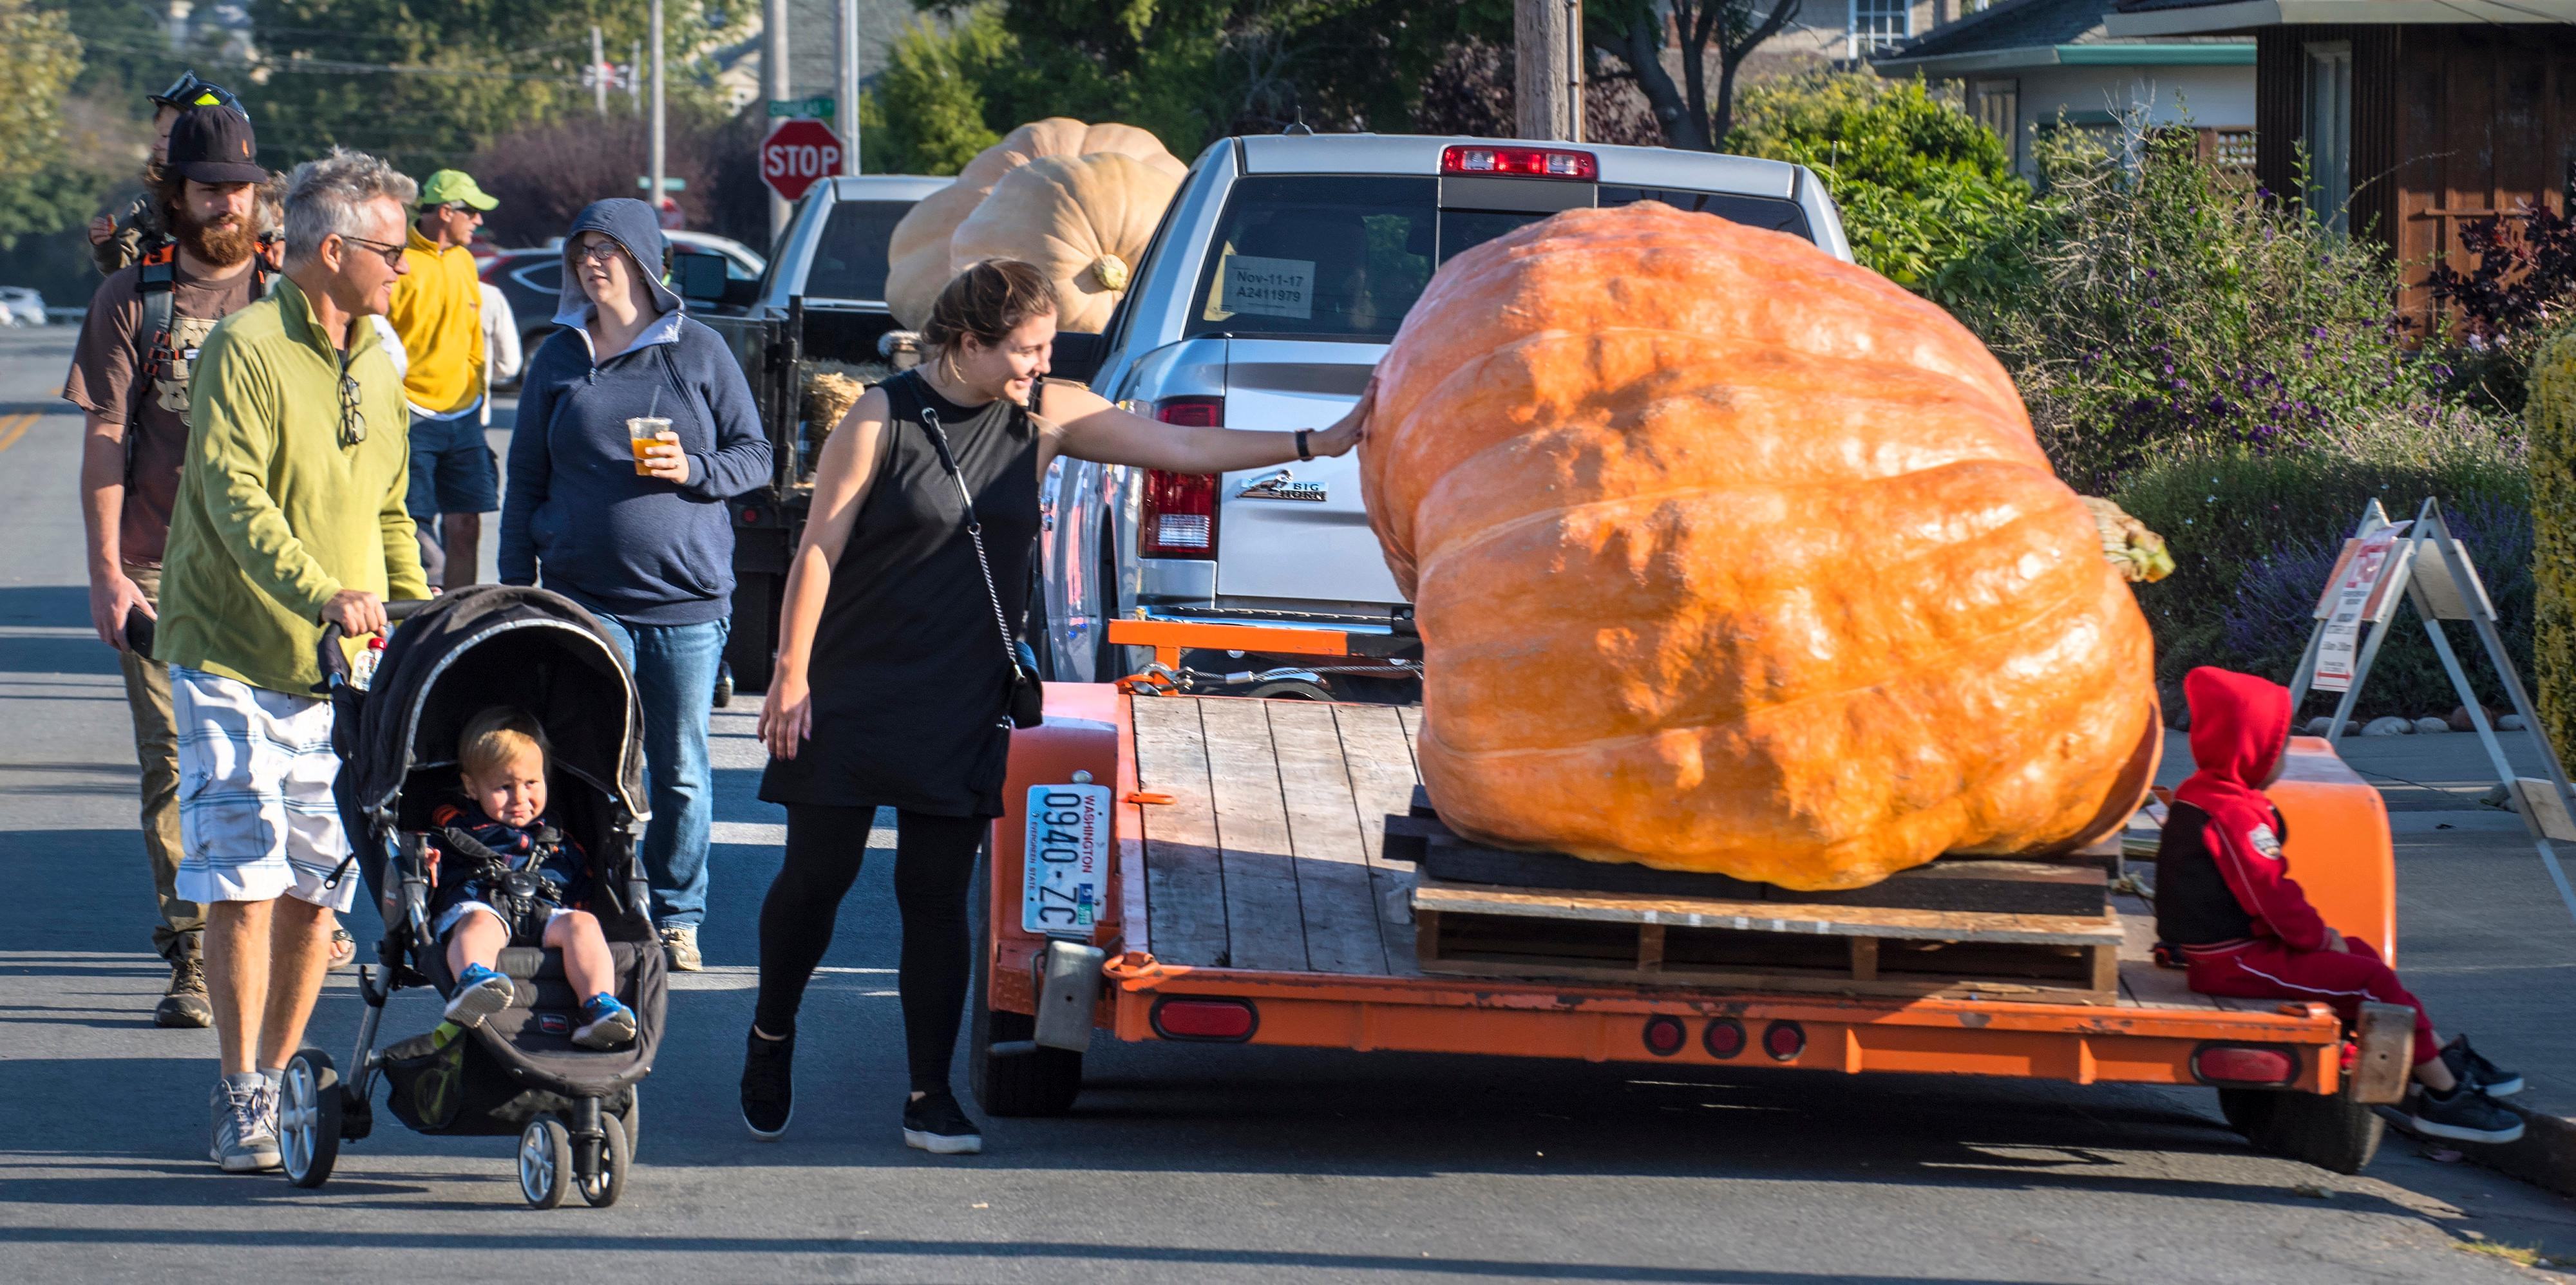 Visitors check out a pumpkin on a trailer at the 44th World Championship Pumpkin Weigh-Off in Half Moon Bay, Calif., on Monday, Oct.  9, 2017. Joel Holland won the competition with a pumpkin weighing in at 2363 pounds.   (Mark Rightmire/The Orange County Register via AP)